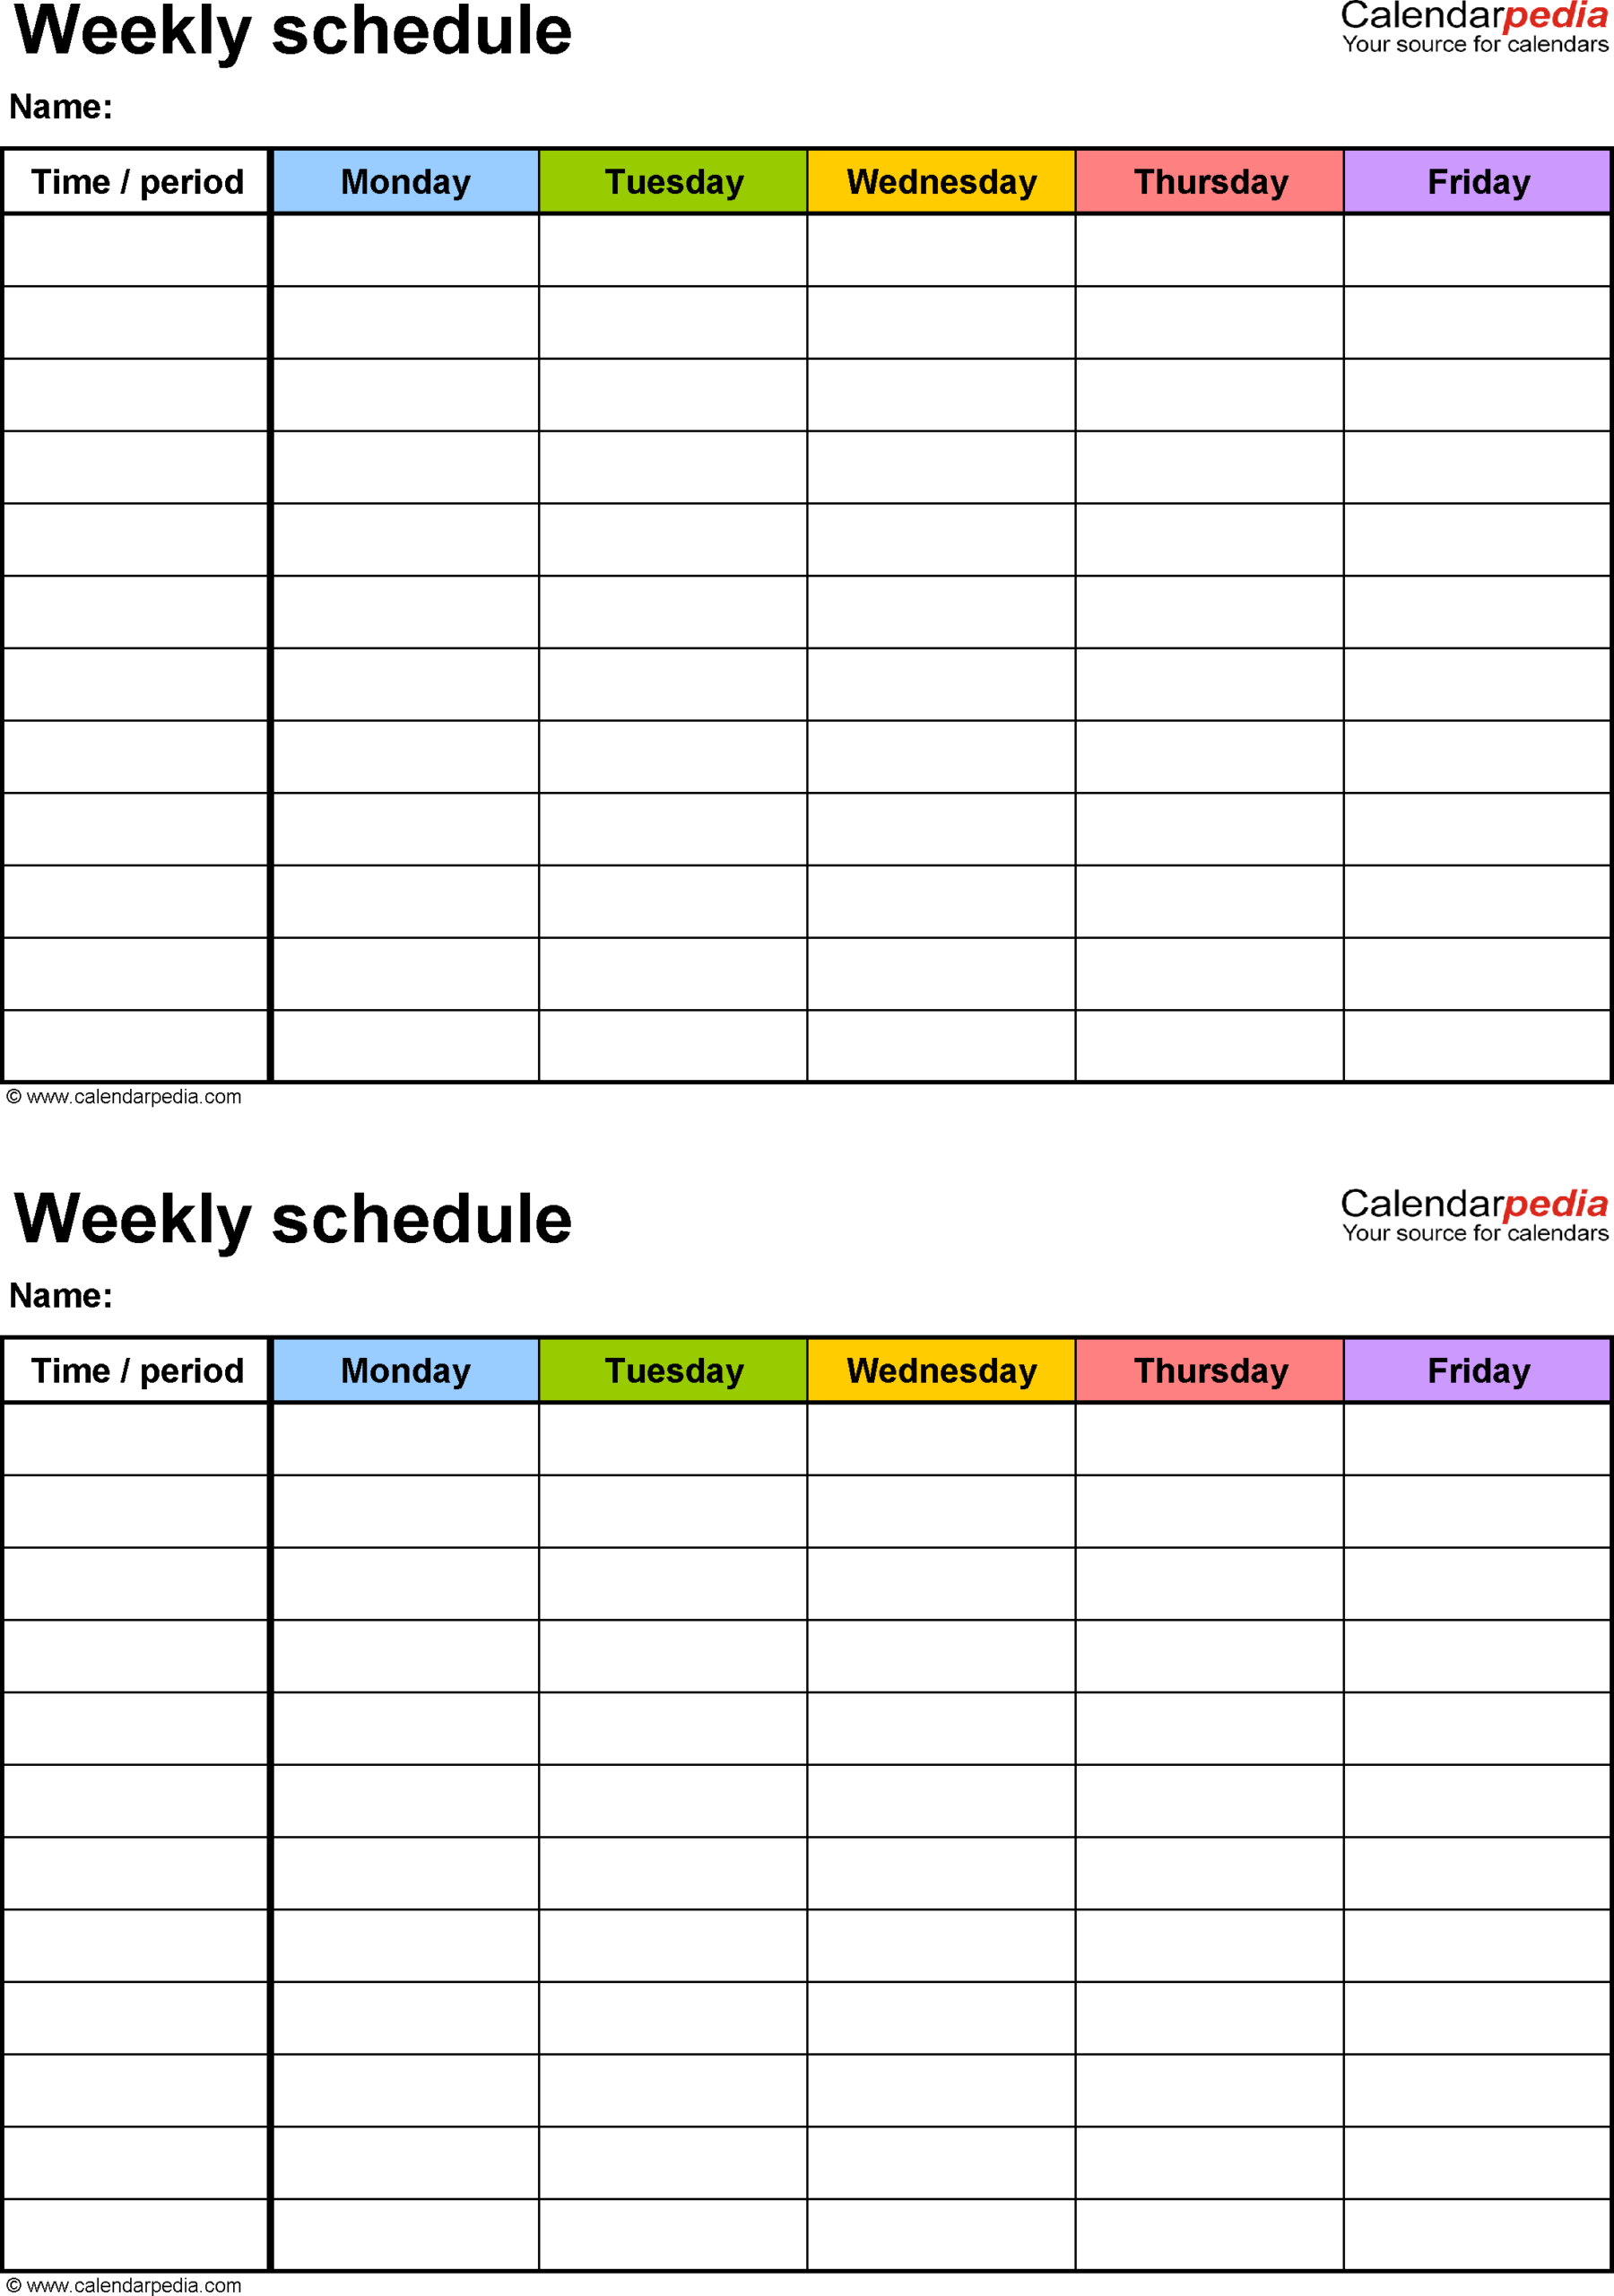 Free Weekly Schedule Templates For Excel  18 Templates within Monday Through Friday Calendar Template Excel